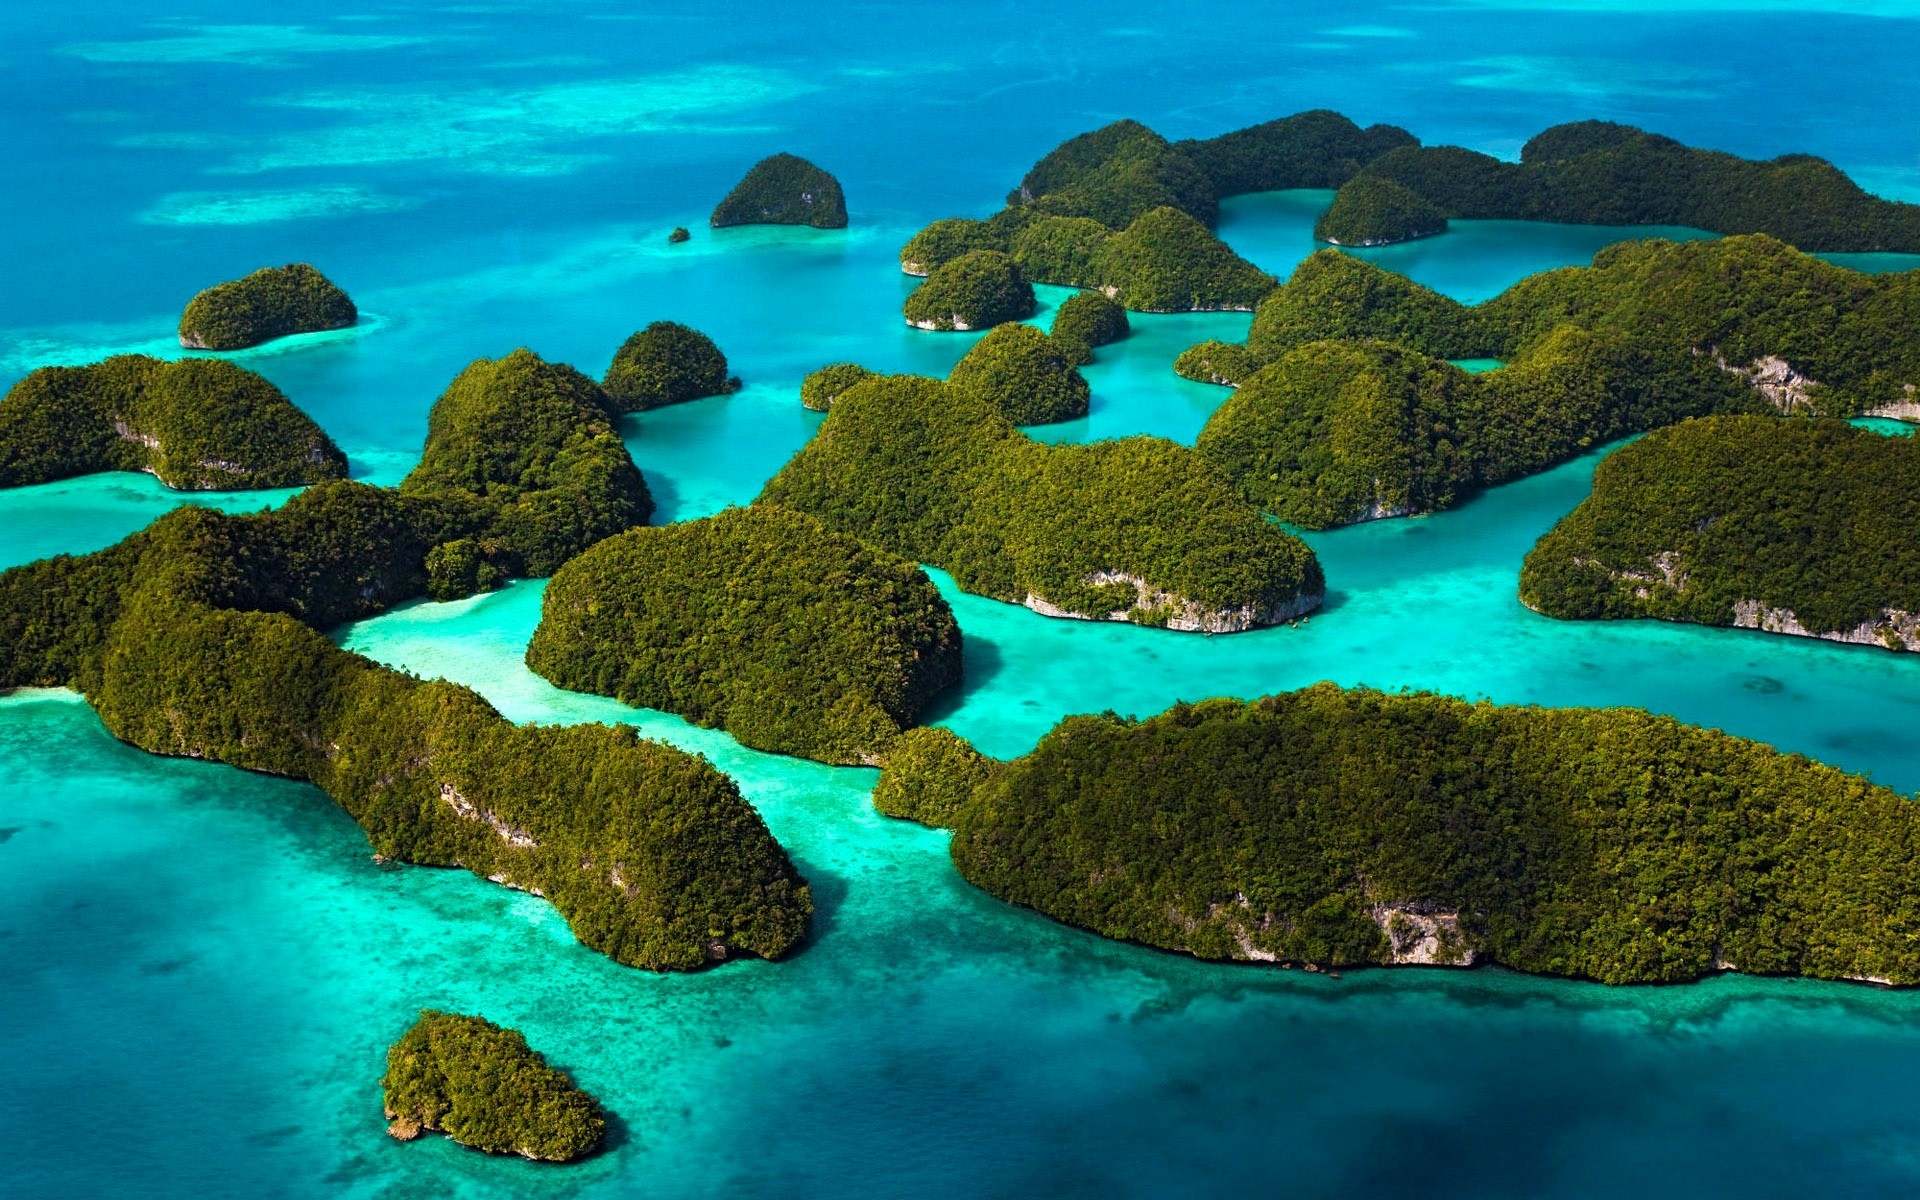 Tips Liburan Murah Ala Backpacker Ke Raja Ampat